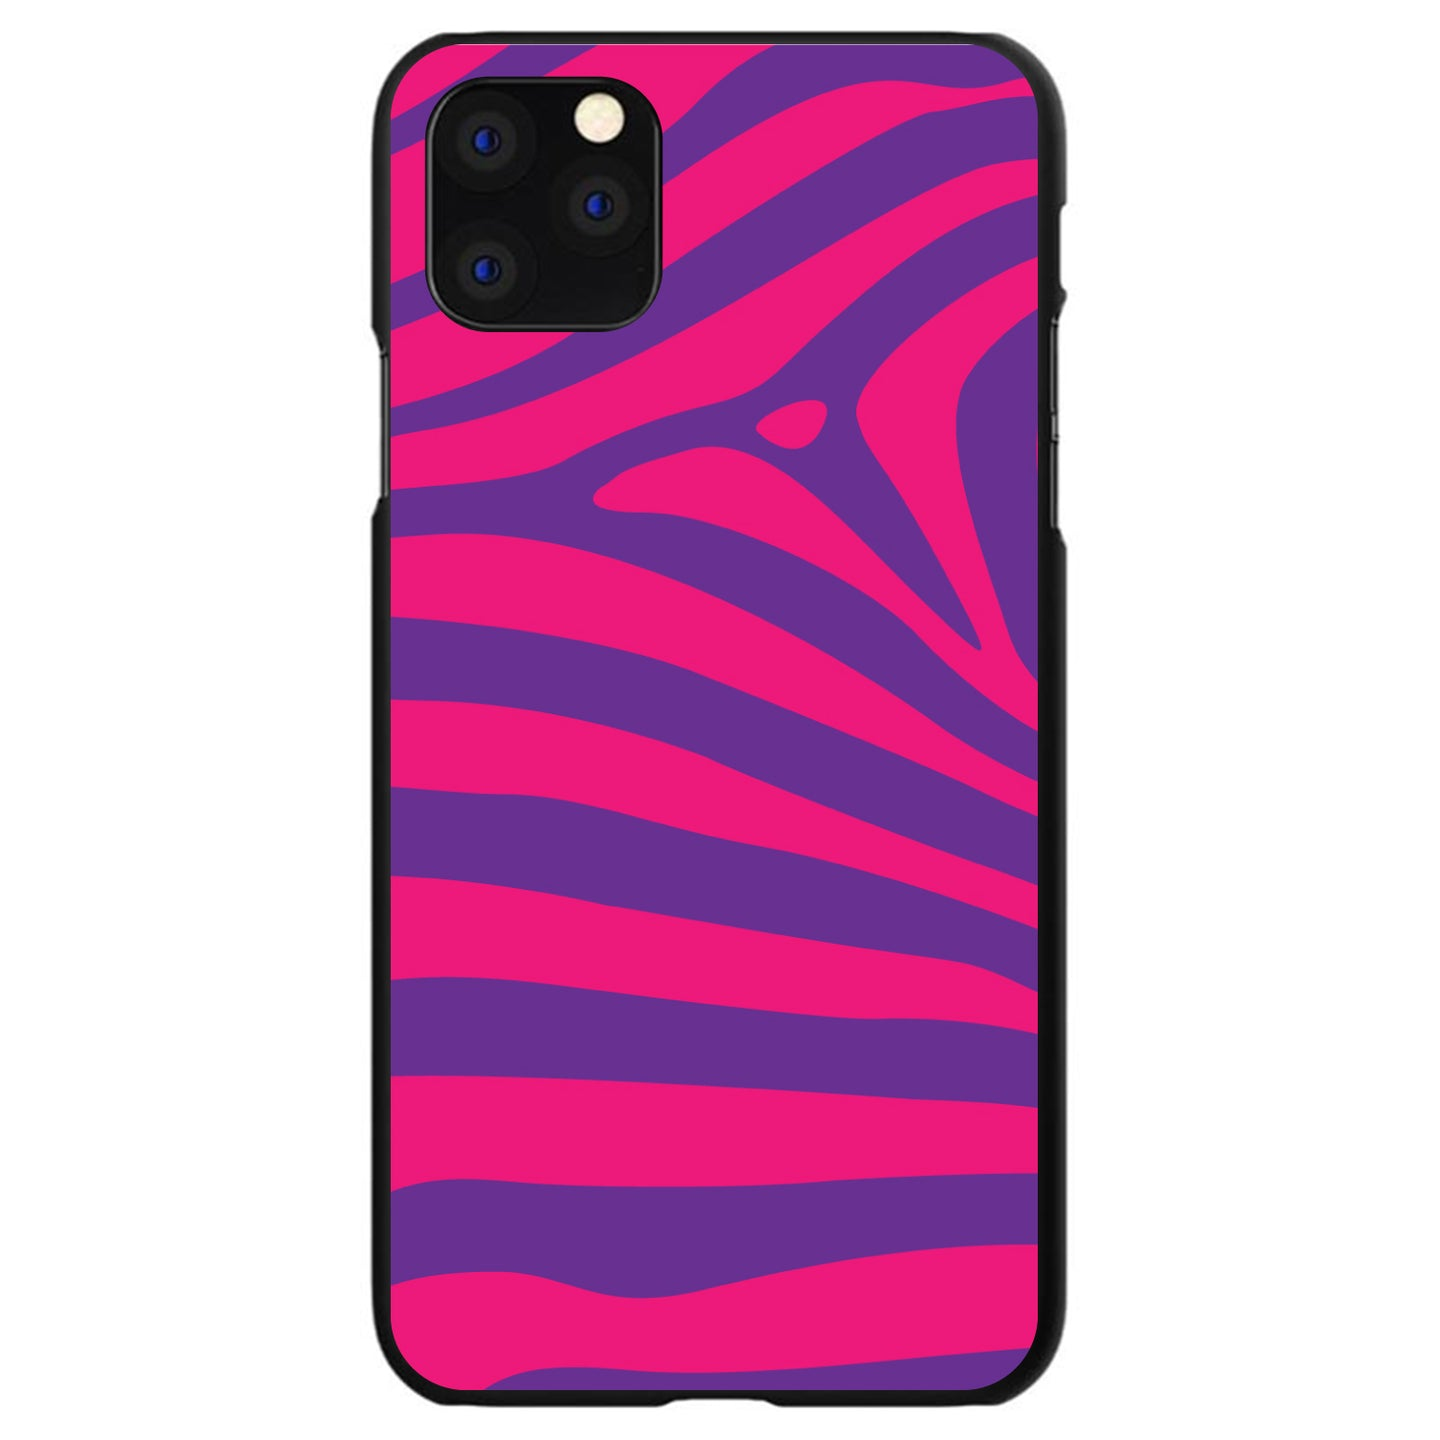 DistinctInk® Hard Plastic Snap-On Case for Apple iPhone - Purple Hot Pink Zebra Skin Stripes